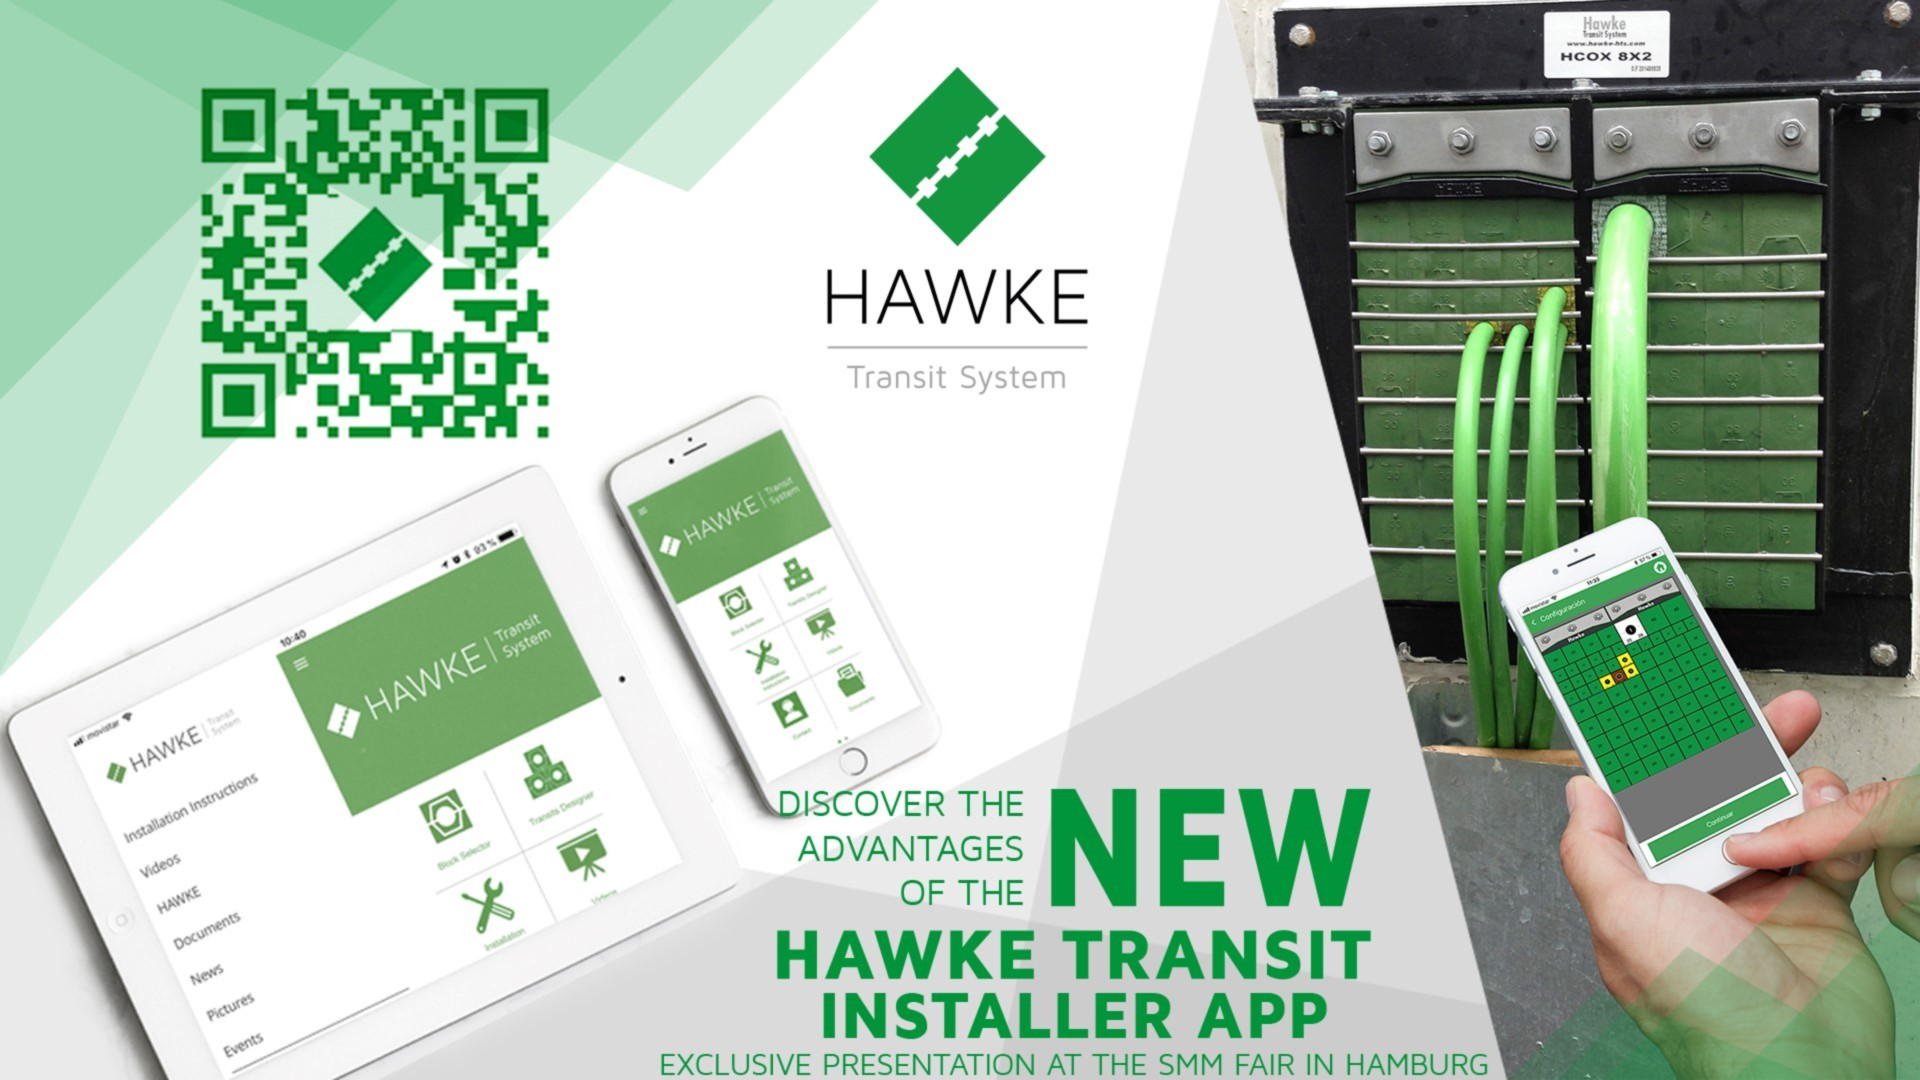 Hawke Installers App allows the installer to calculate automatically the best configuration for a transit, it exports the material list, drawing with colour coding and other information. Installing your transit much easier.